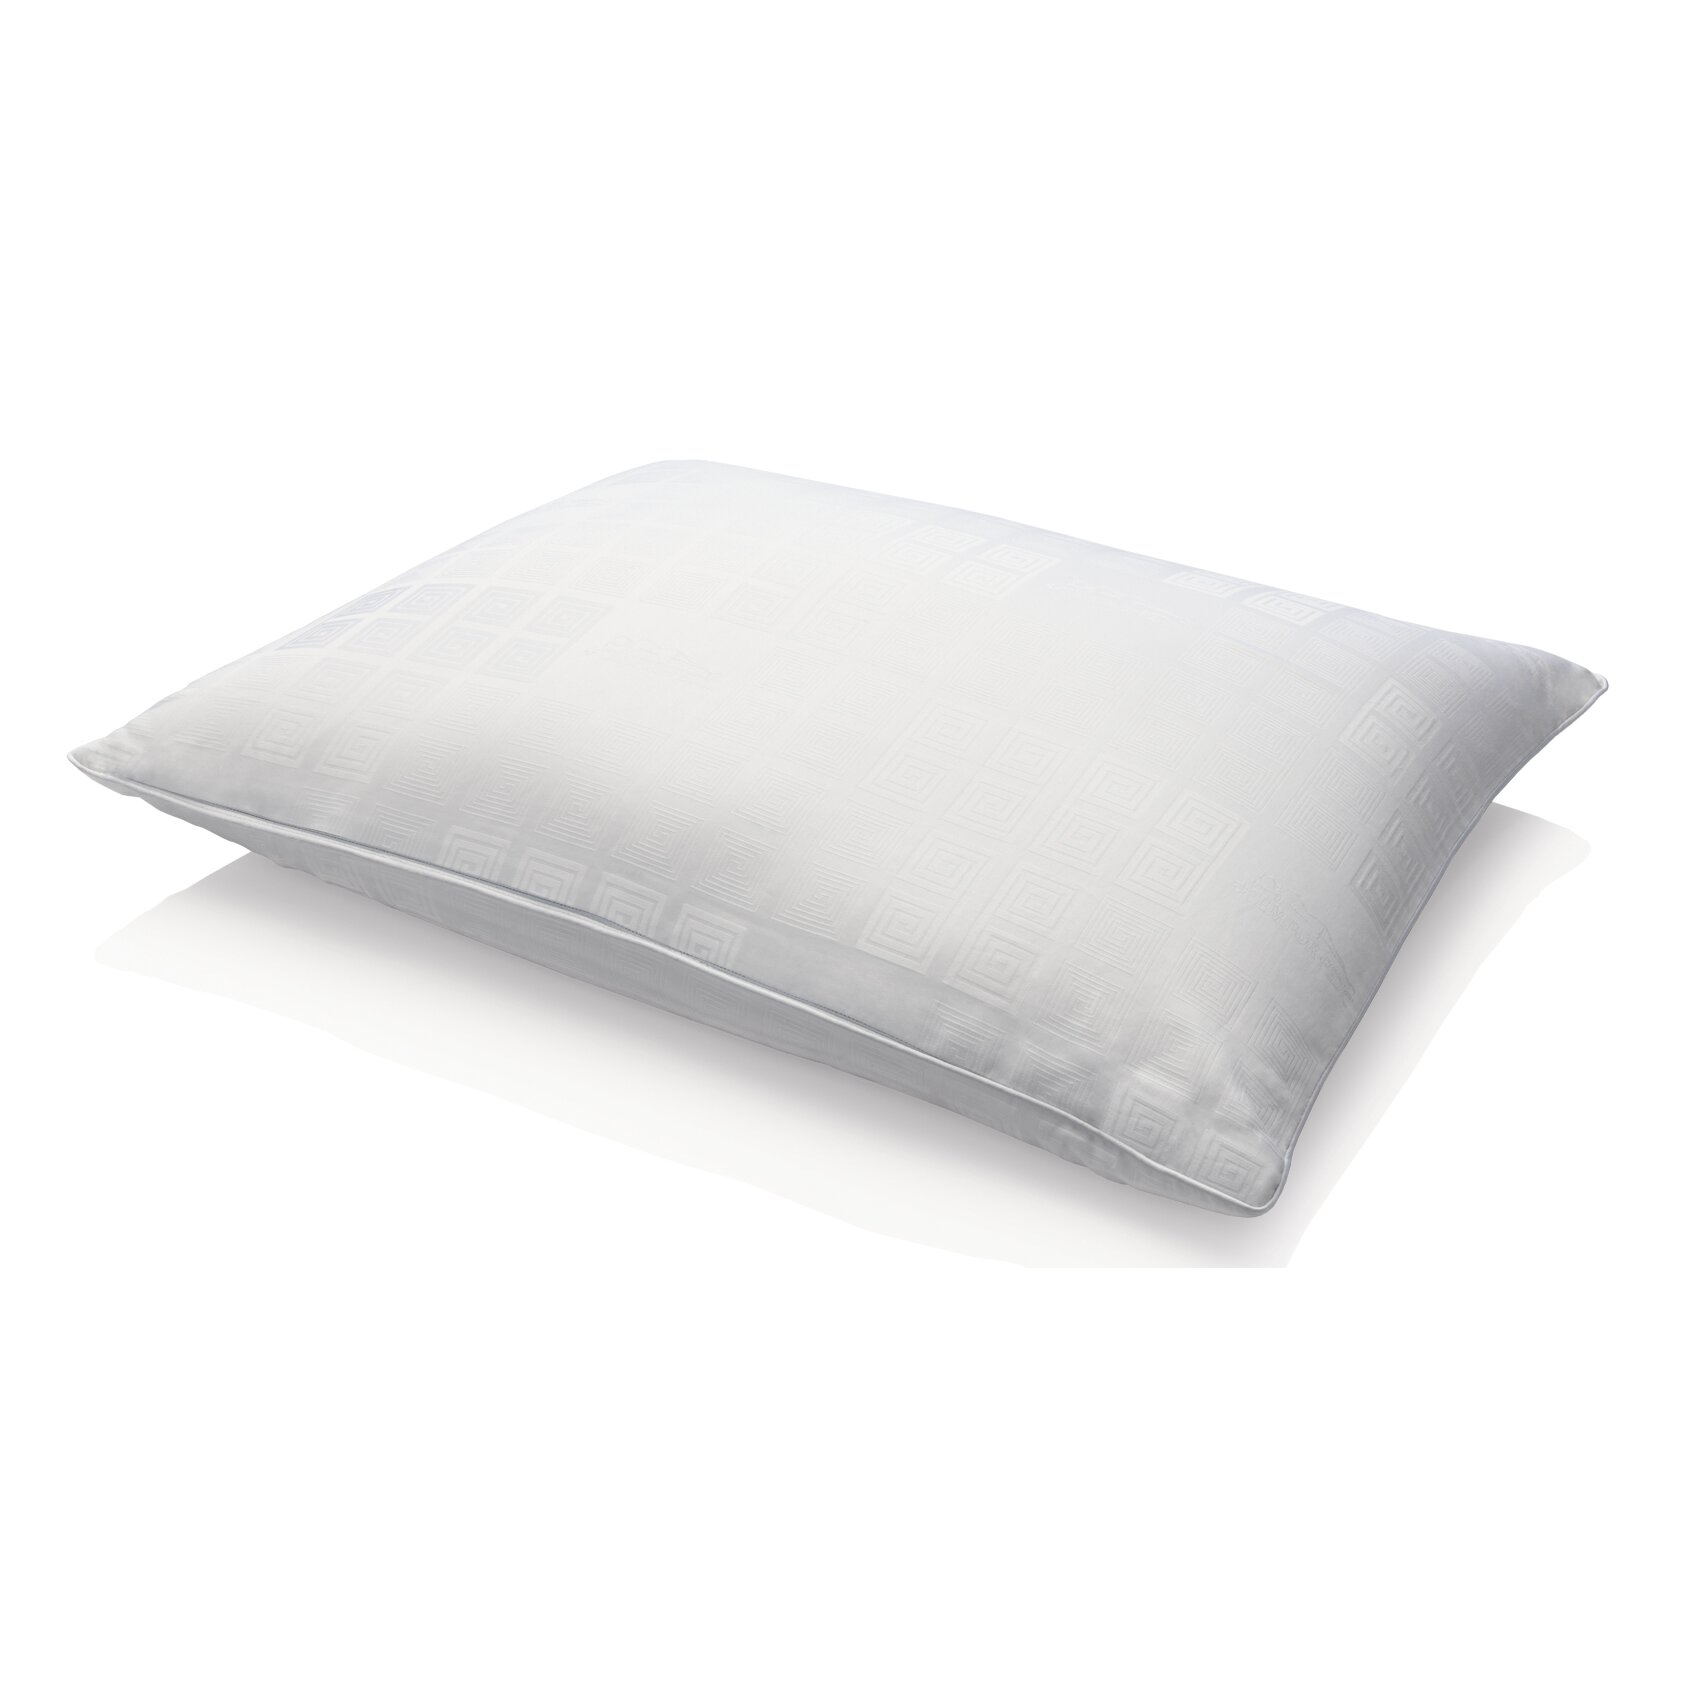 Tempur-Pedic Soft Traditional Memory Foam Standard Pillow Wayfair